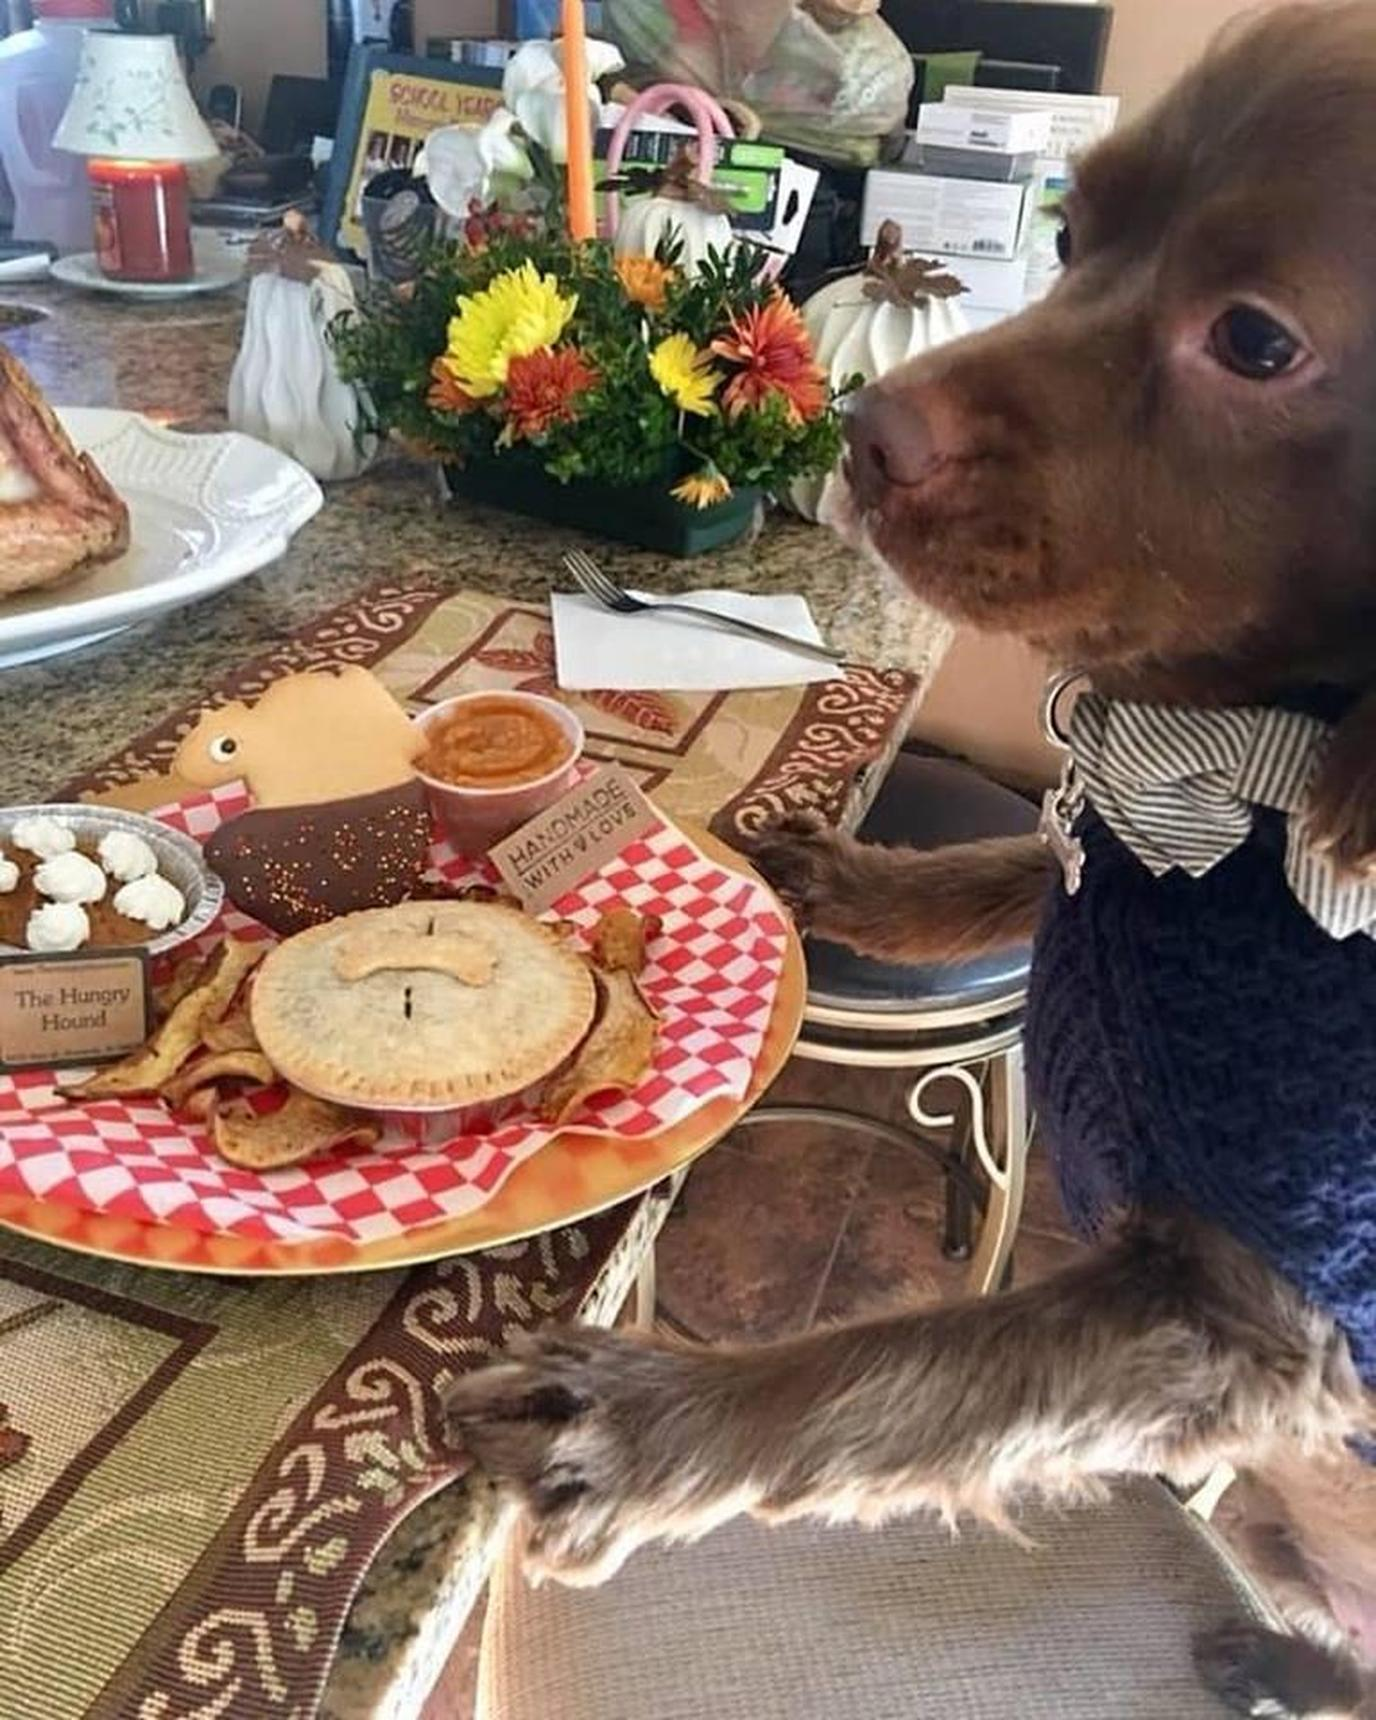 Dog bakery The Hungry Hound in New Jersey creates special Thanksgiving meals for dogs.